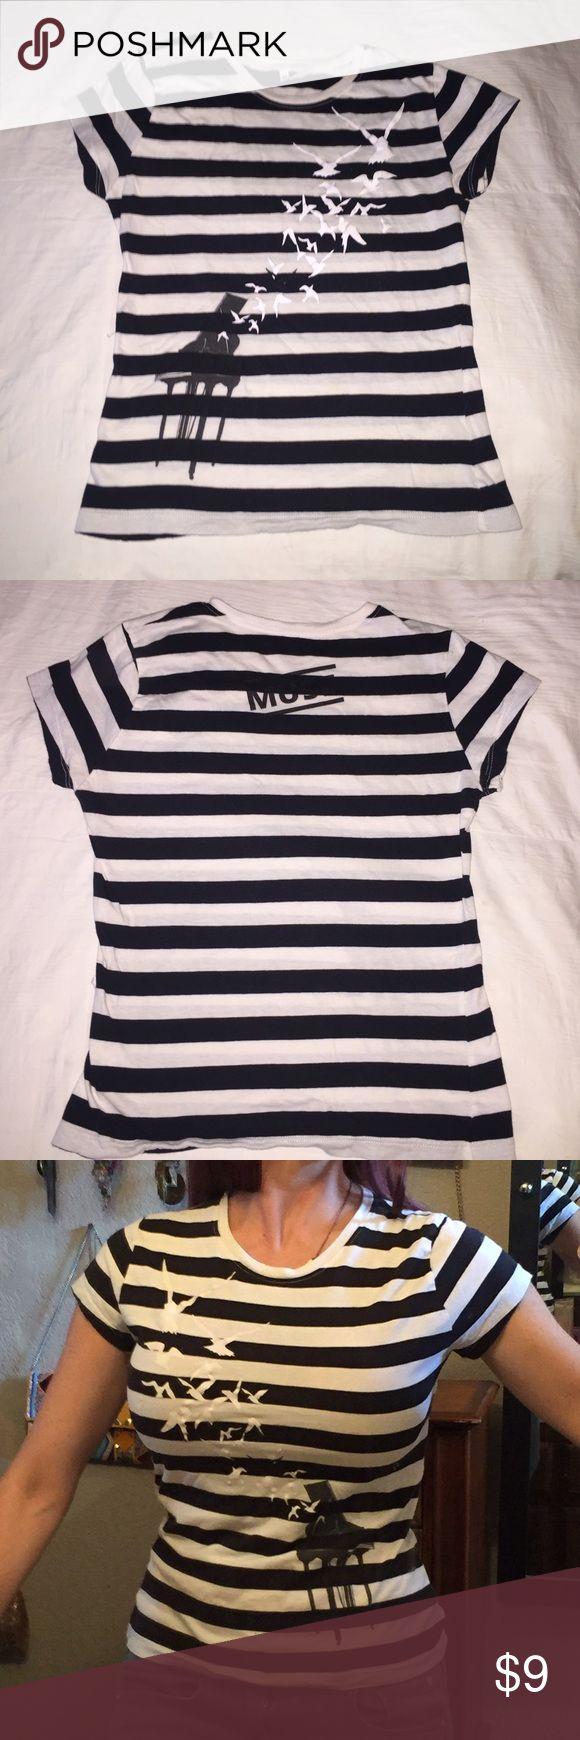 Muse T-shirt Brand New Black and white striped fitted T shirt purchased at Muse concert and never worn. Super soft, size medium but fits like a small Tops Tees - Short Sleeve